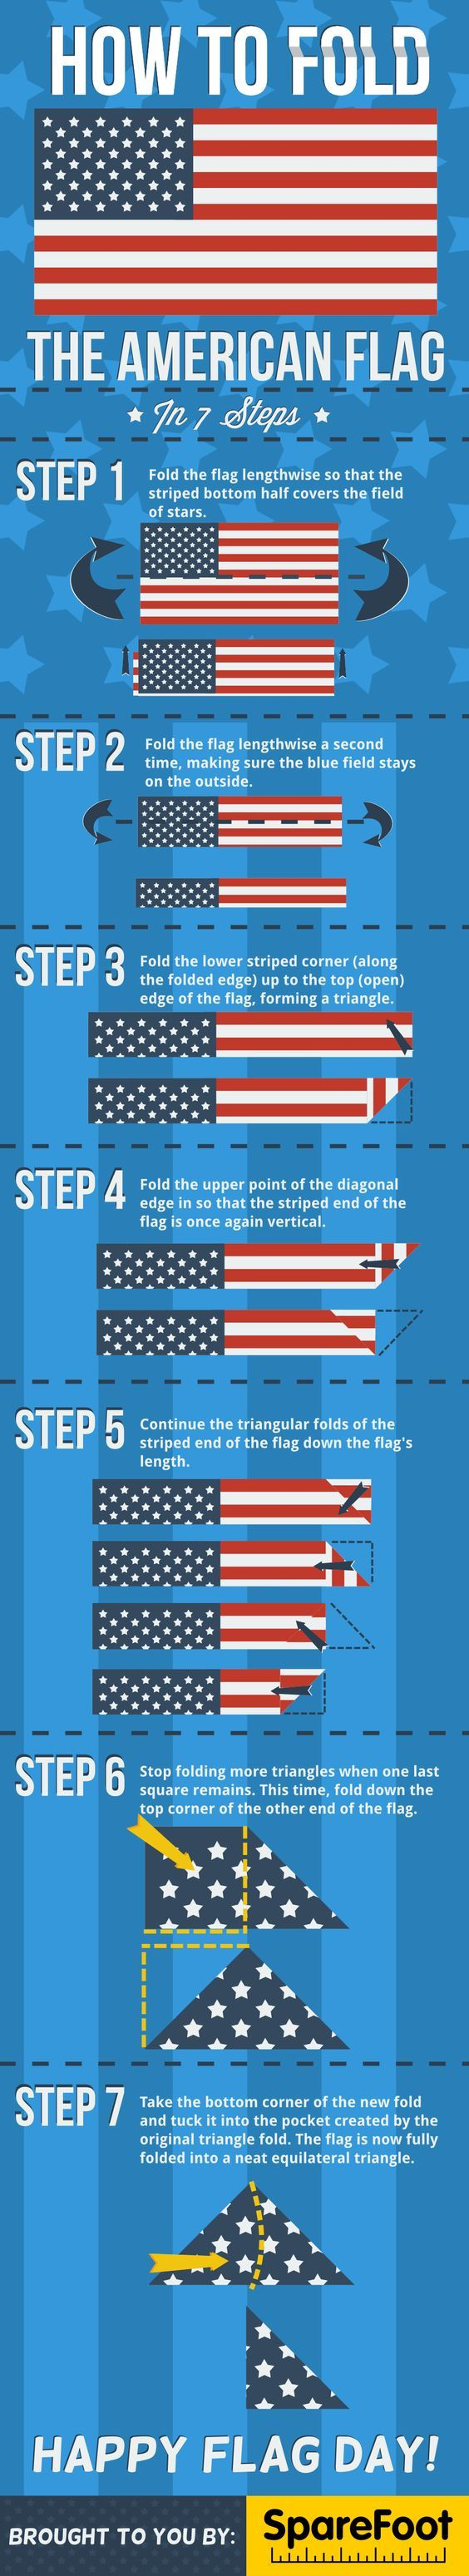 Learn how to properly fold and store your American flag!